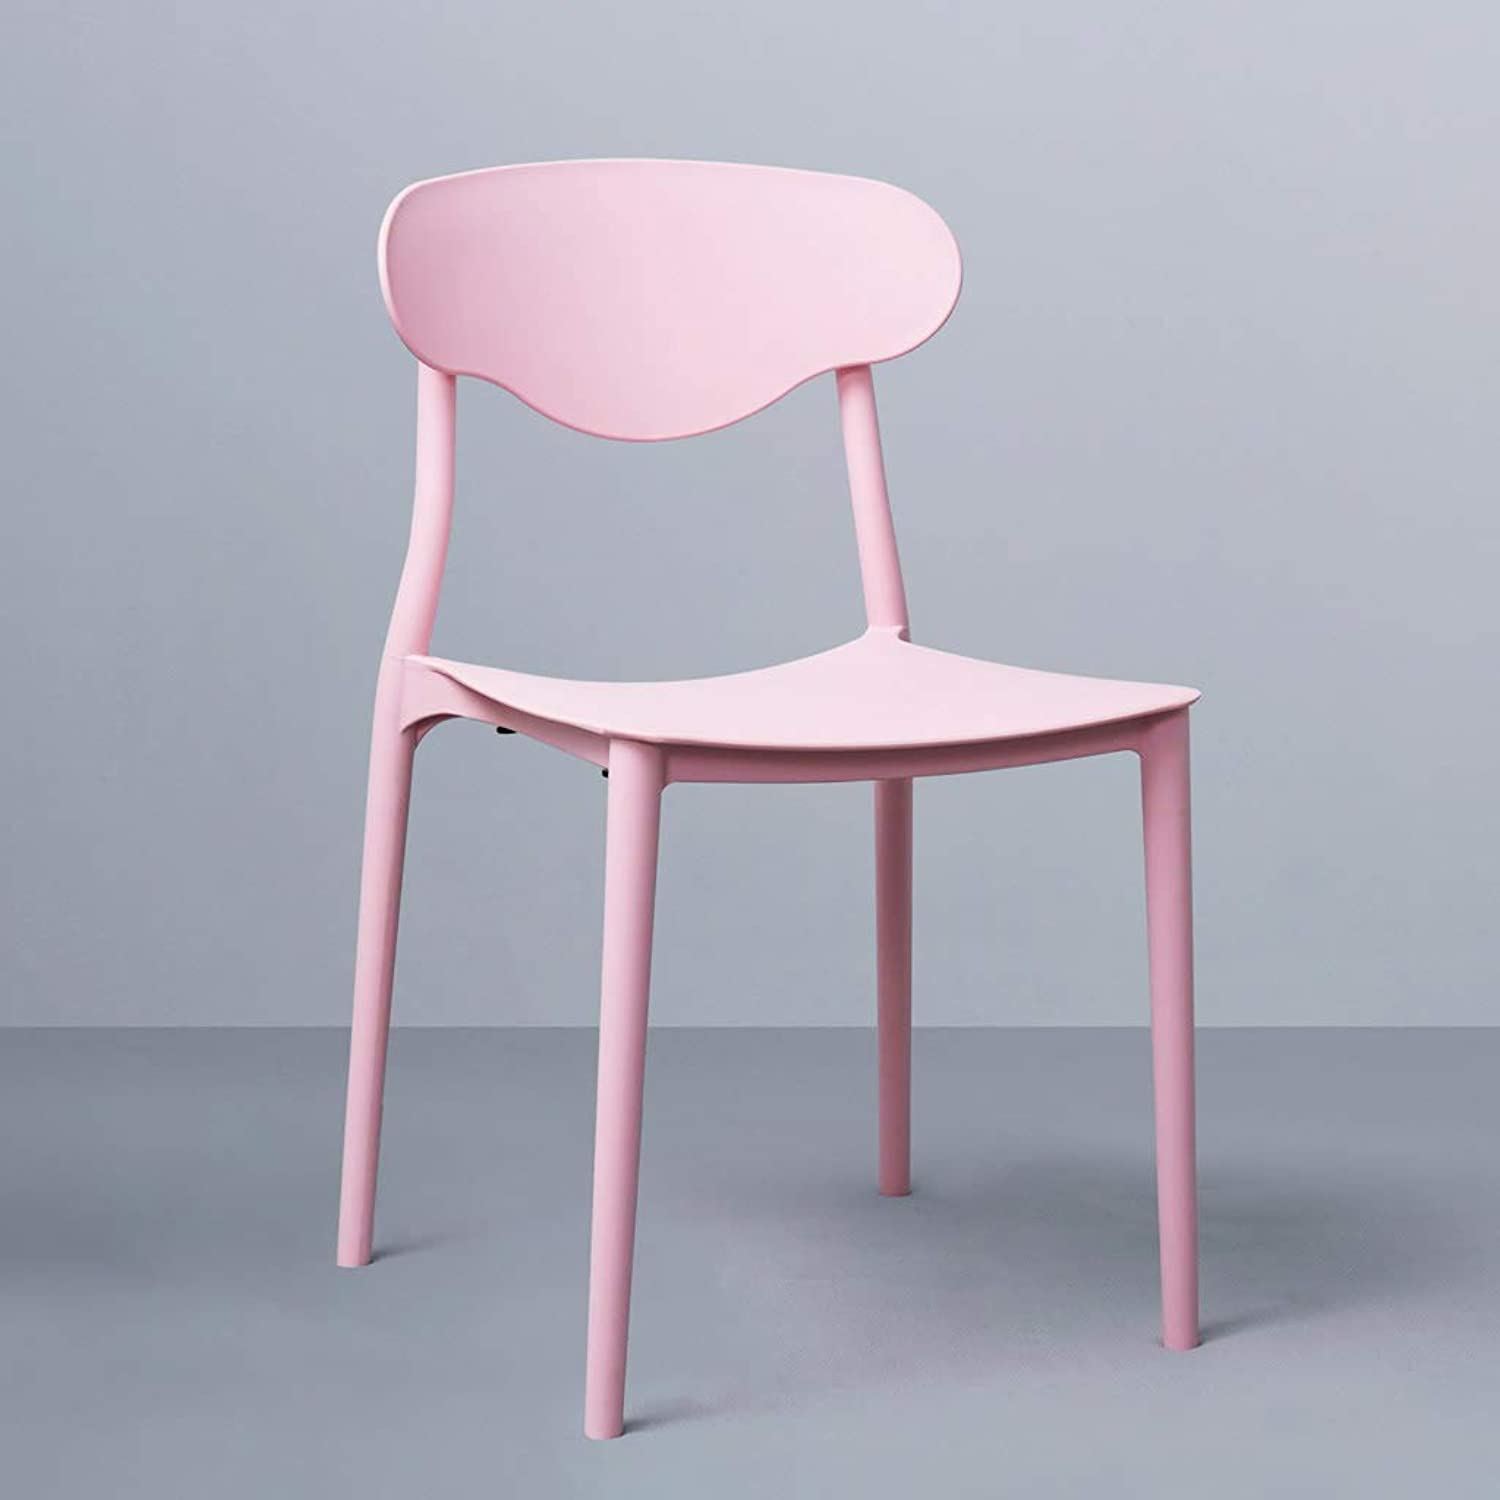 SYFO Chair Fashion Plastic Chair Simple Home Adult Dining Chair Three colors Optional Stool (color   Pink)